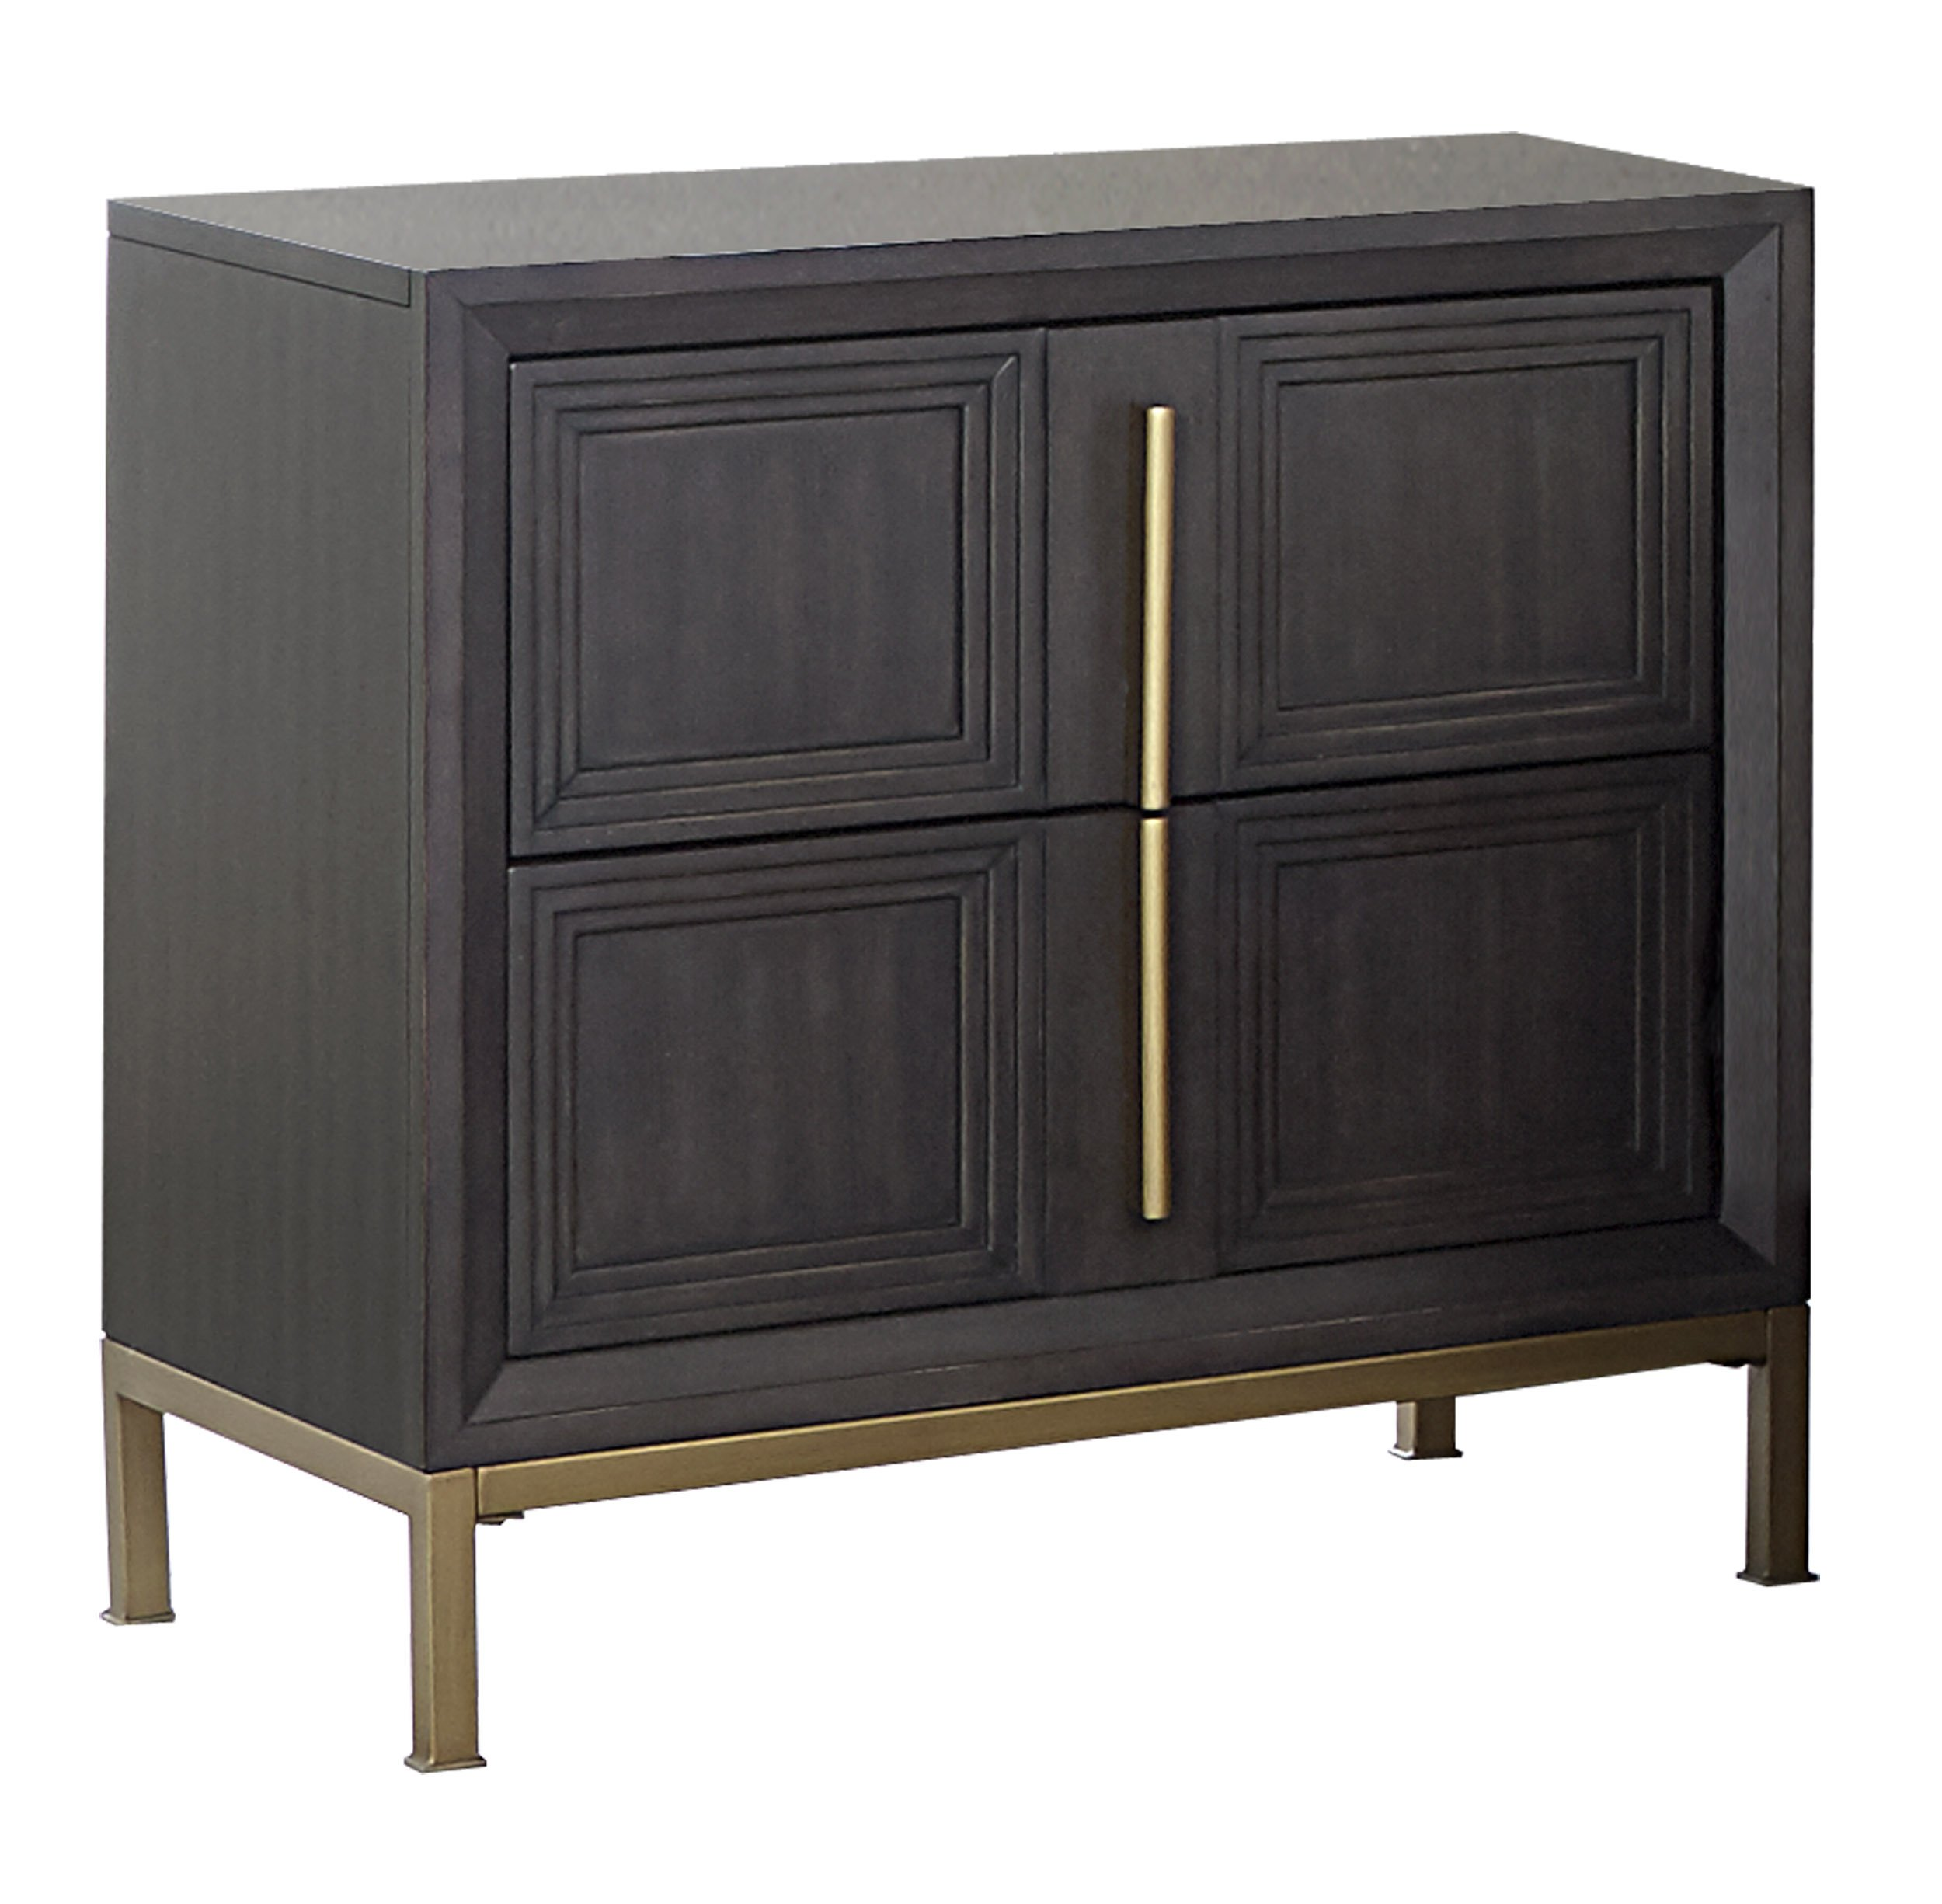 Homelegance Vargehese Two-Drawer Nightstand, Brown - Add this eye-catching Nightstand to your modern room Dark Charcoal finished ash veneer with dramatic step Molding and gold-finished inlay-accent framing Fixed felt in Top drawer - nightstands, bedroom-furniture, bedroom - 81SoG jC7dL -